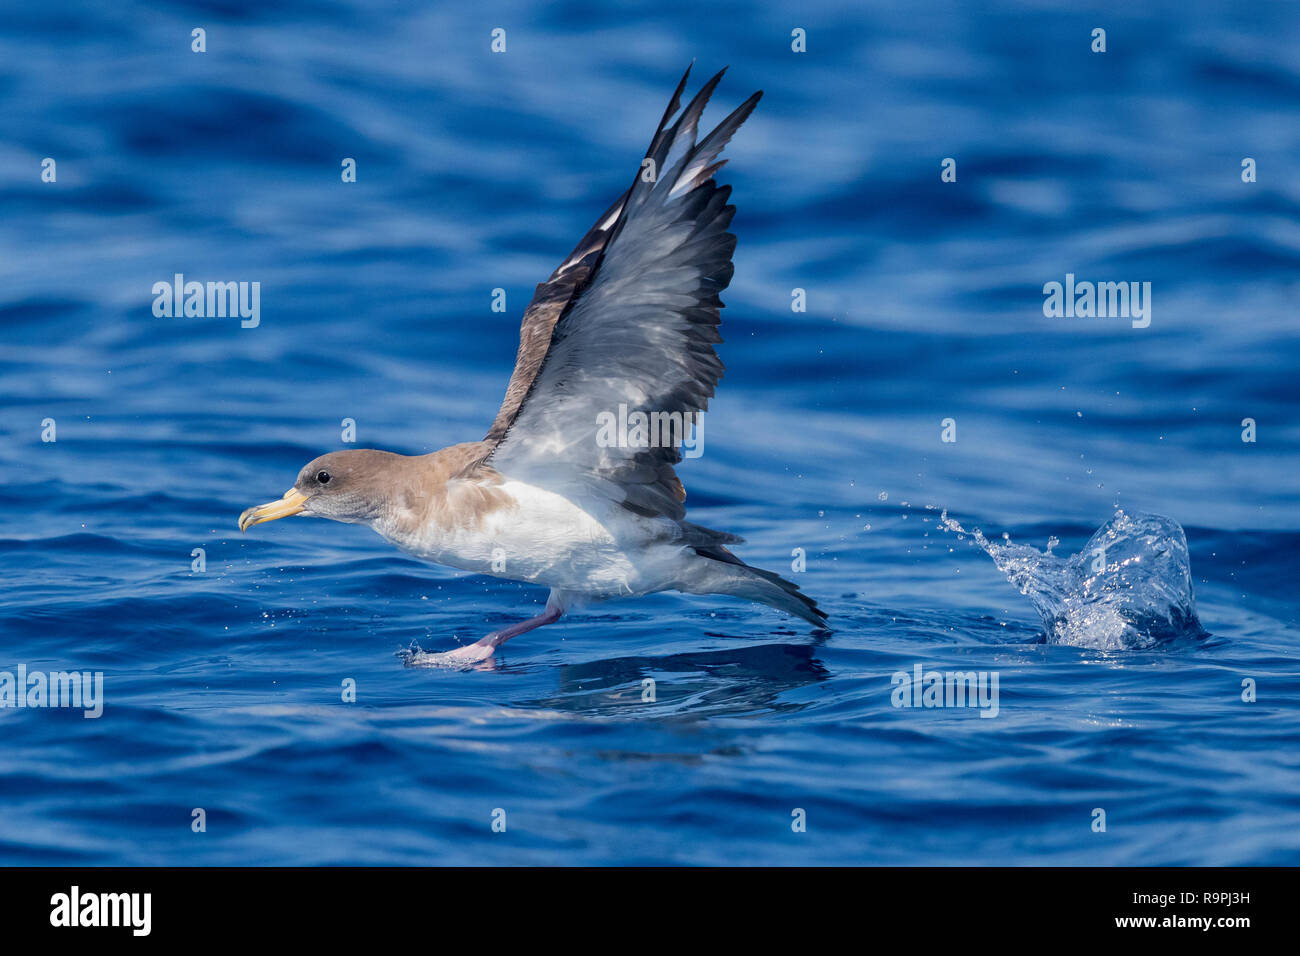 Scopoli's Shearwater (Calonectris diomedea), side view of an adult taking off from the water - Stock Image